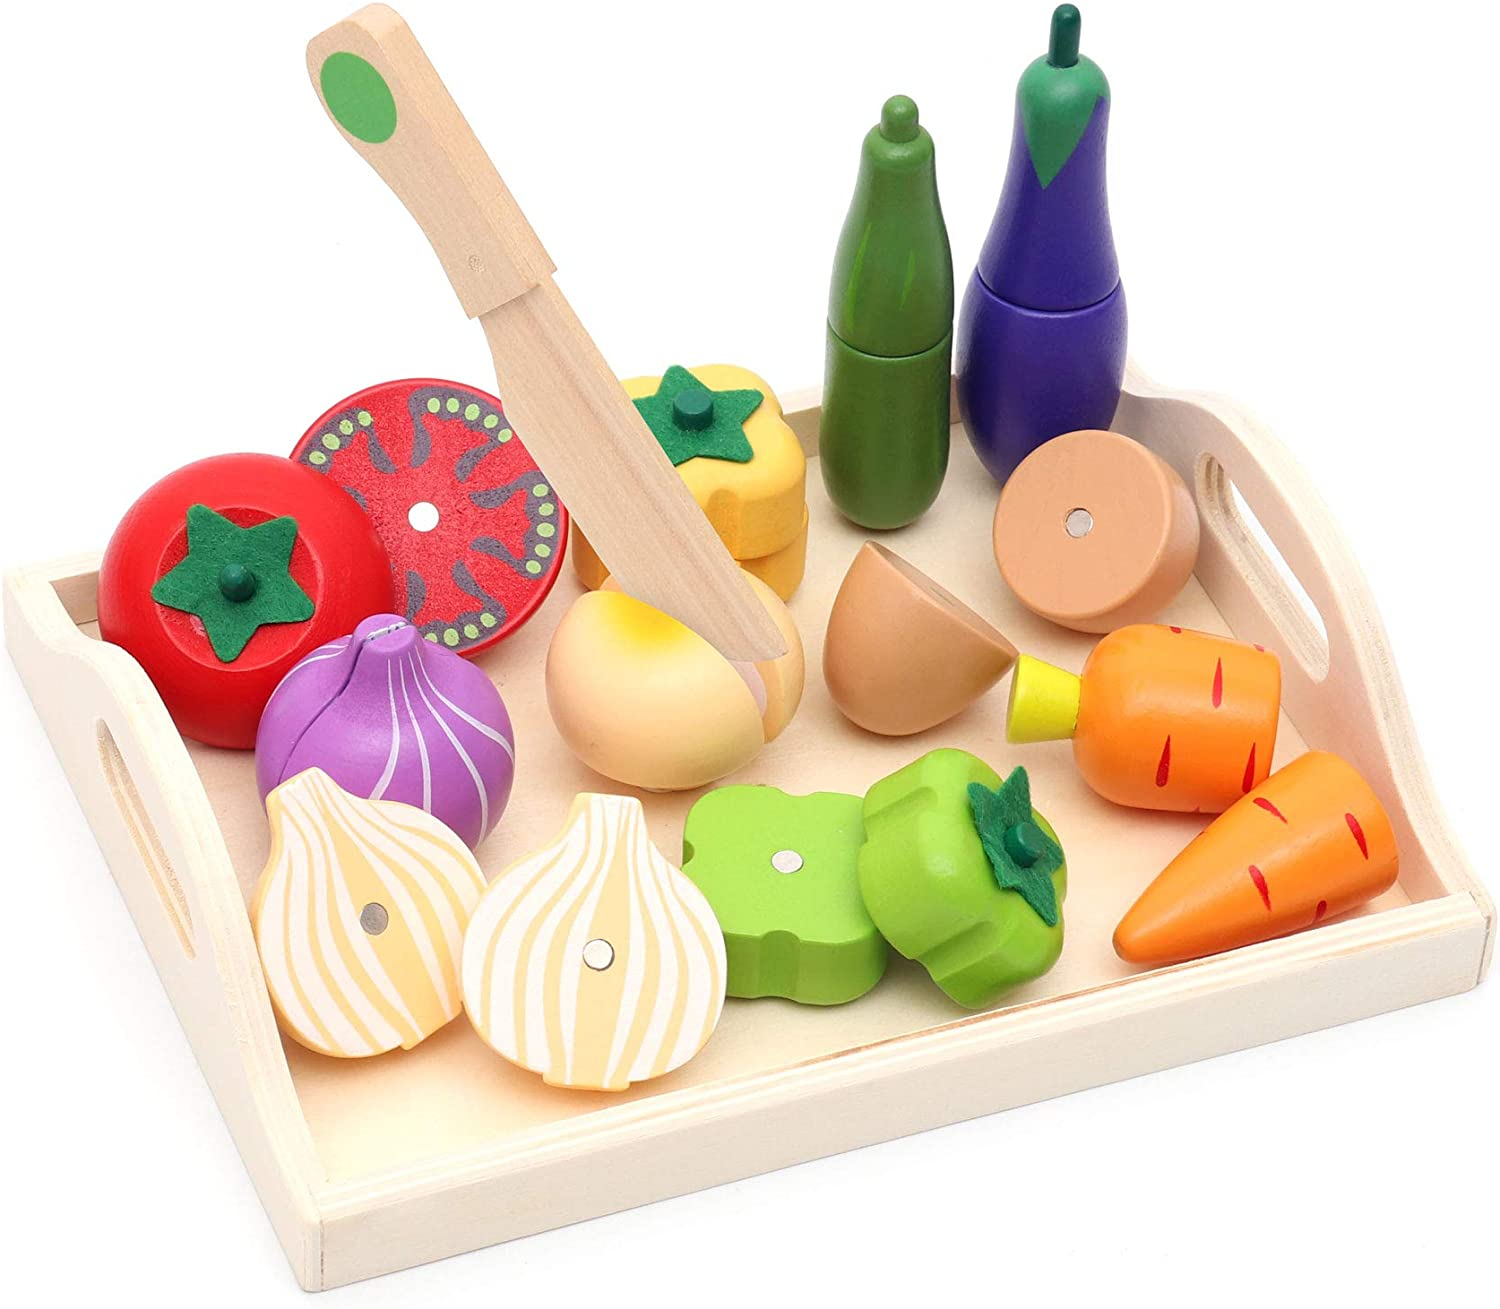 Fondear Children's Magnetic Vegetable Cutting Play Set / Simulated Kitchen / Wooden Play Set of Fruits, Knife & Case, Natural & Non-toxic, Best Gift for Kids' Birthday